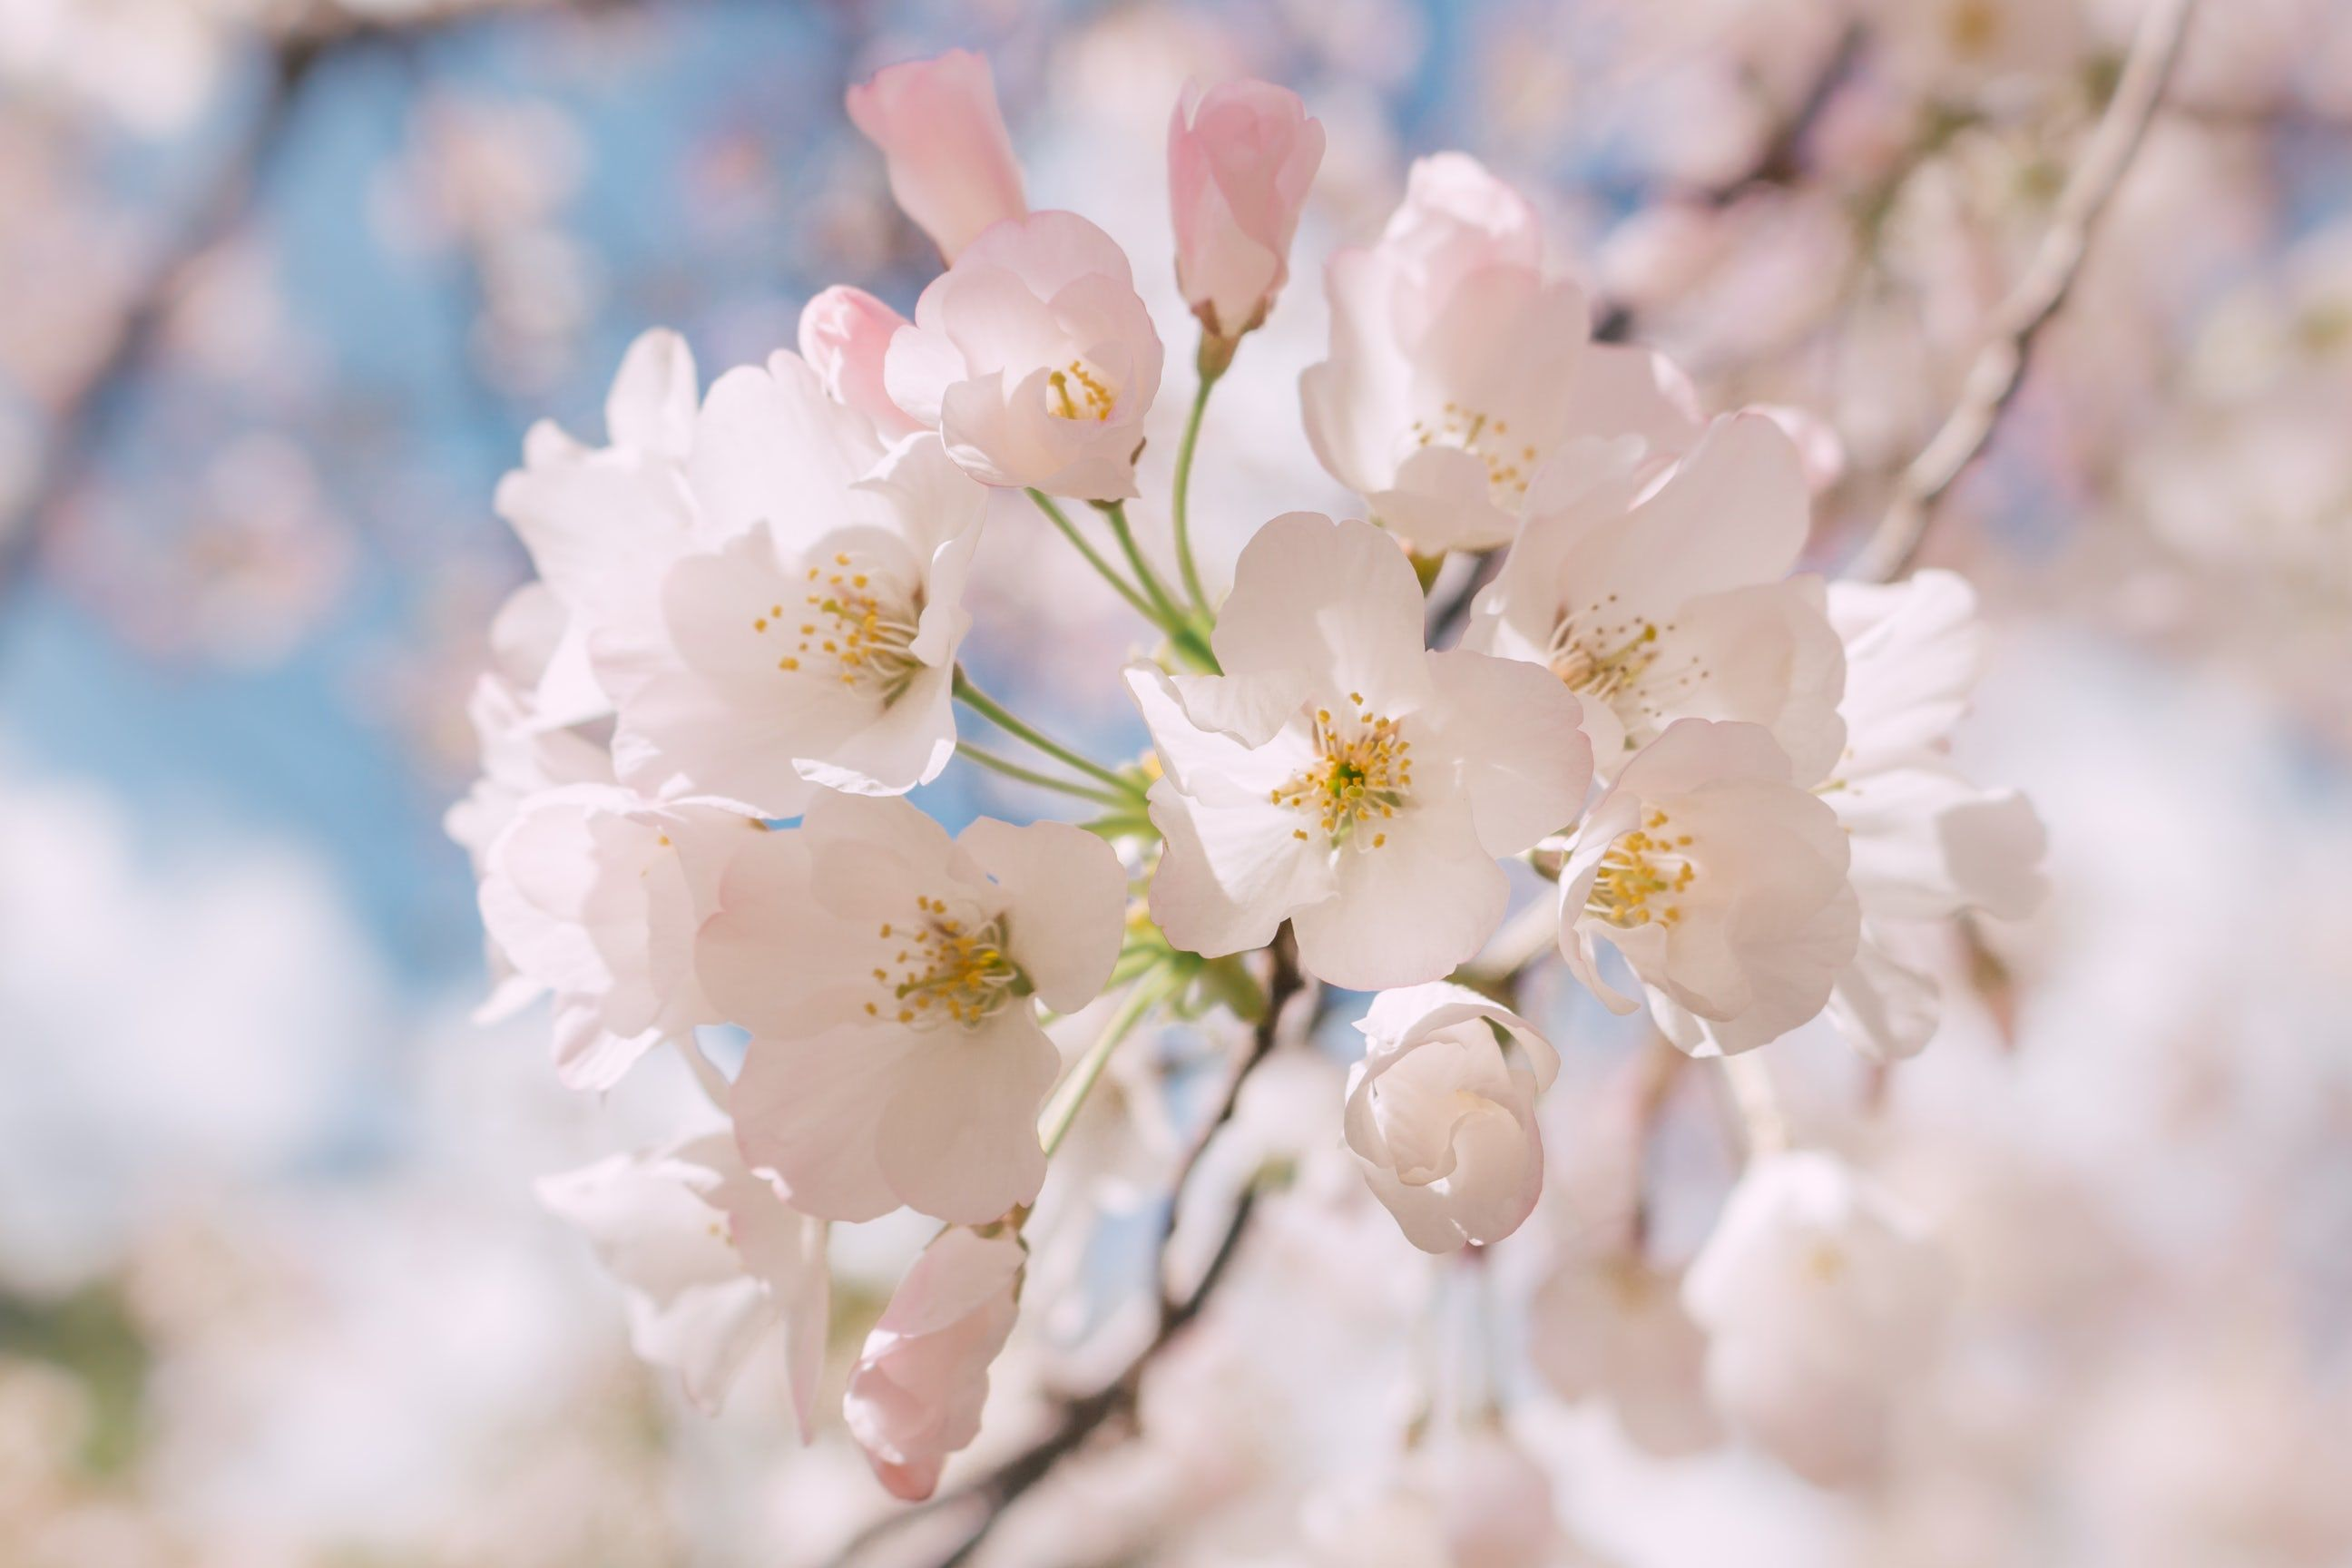 Macro Of White Blossom On Branch In Spring Elizabeth Gamble Garden Flower Pictures Cherry Blossom Pictures Blossom